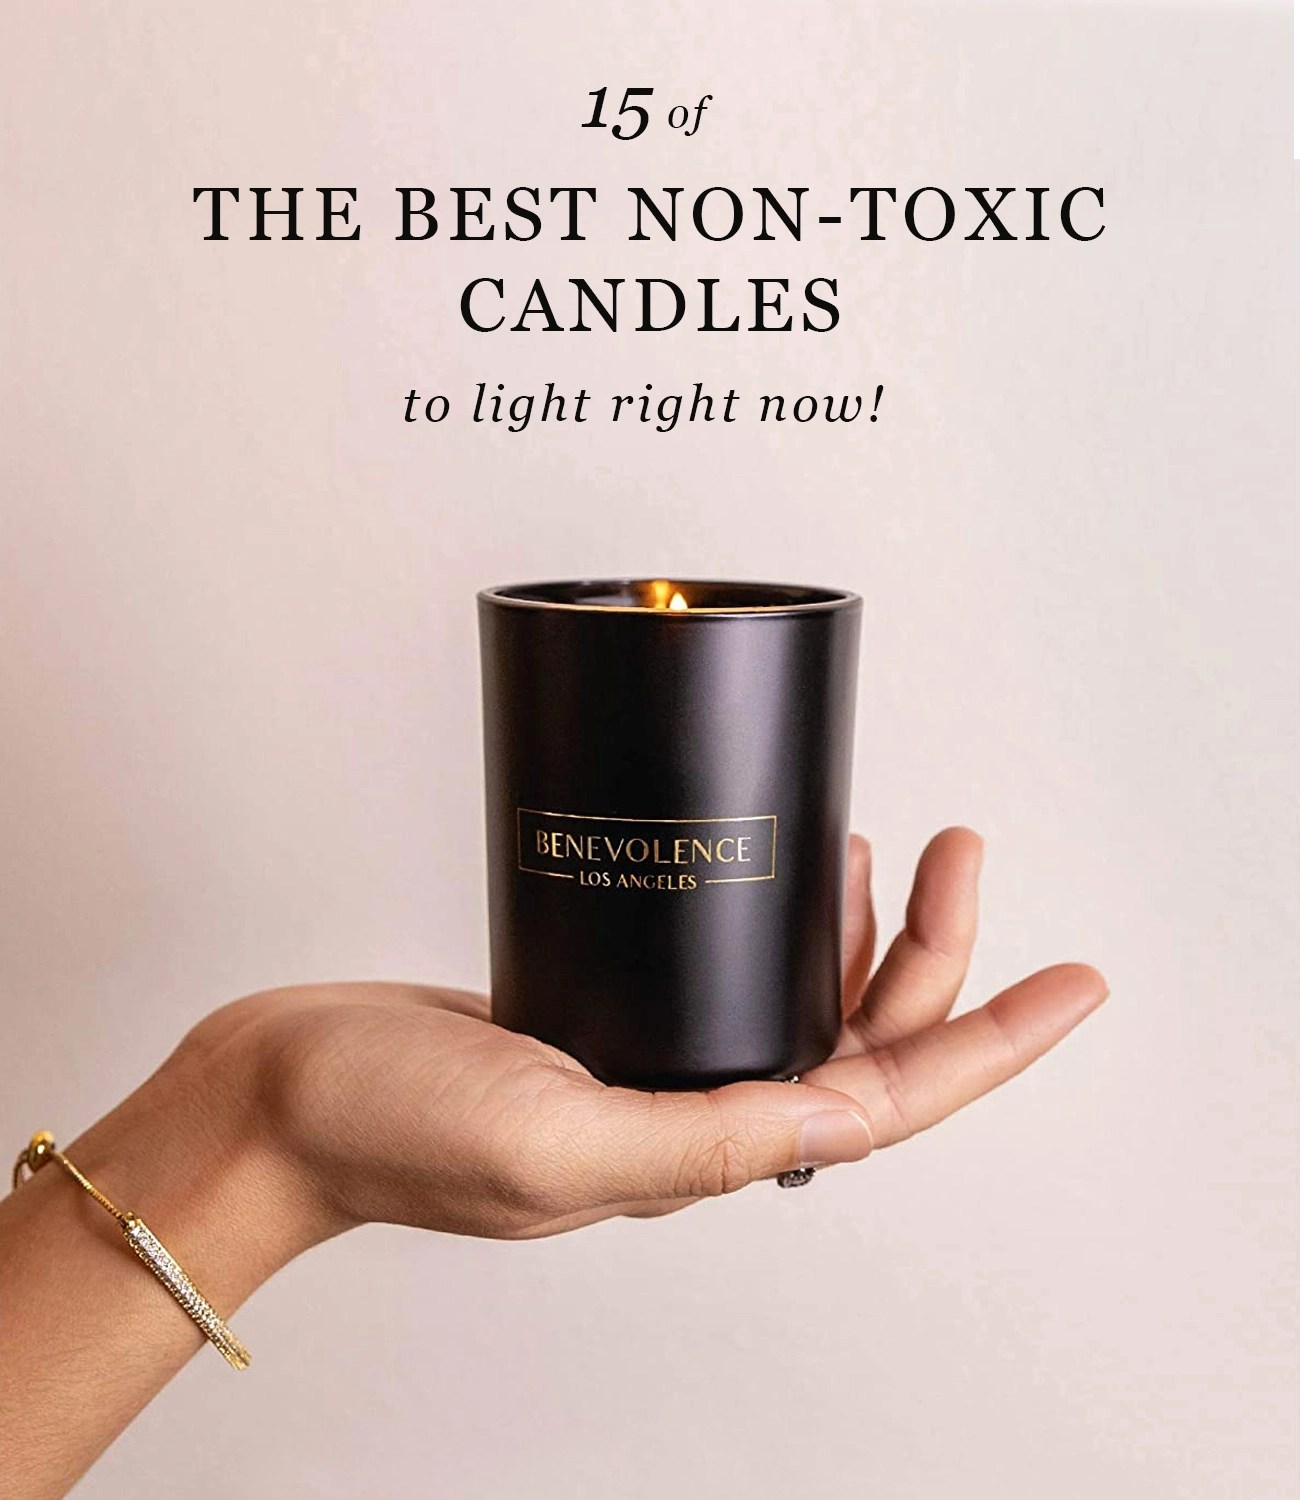 The Best Non-Toxic Candles to Buy Now